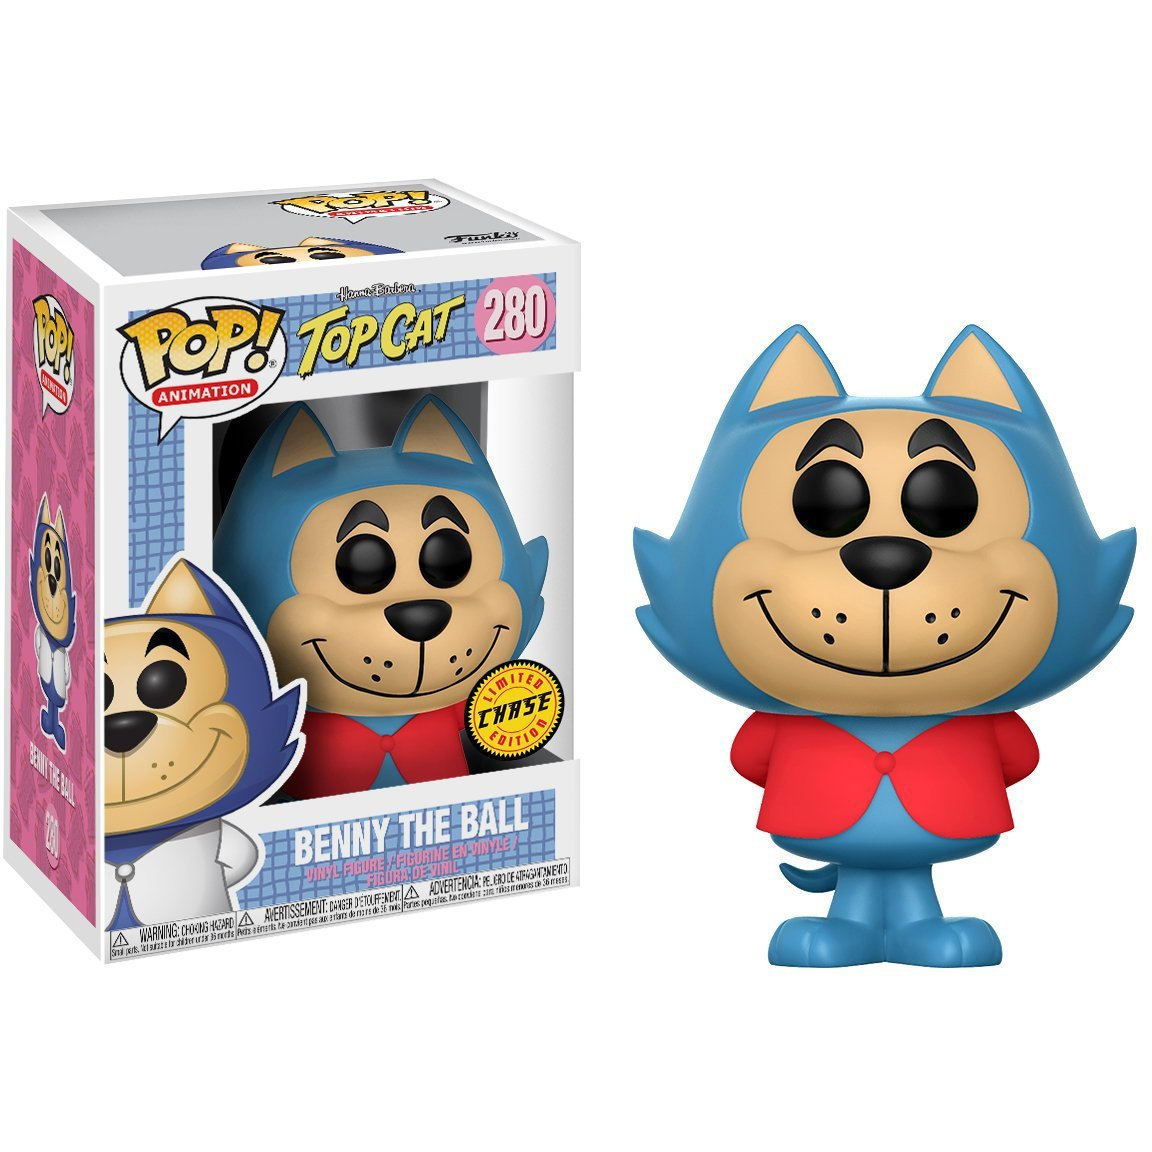 : Hanna-Barbera Top Cat x POP BCC9US20 #280 // 13660 - B Animation Vinyl Figure /& 1 POP Compatible PET Plastic Graphical Protector Bundle Chase Edition Funko Benny The Ball